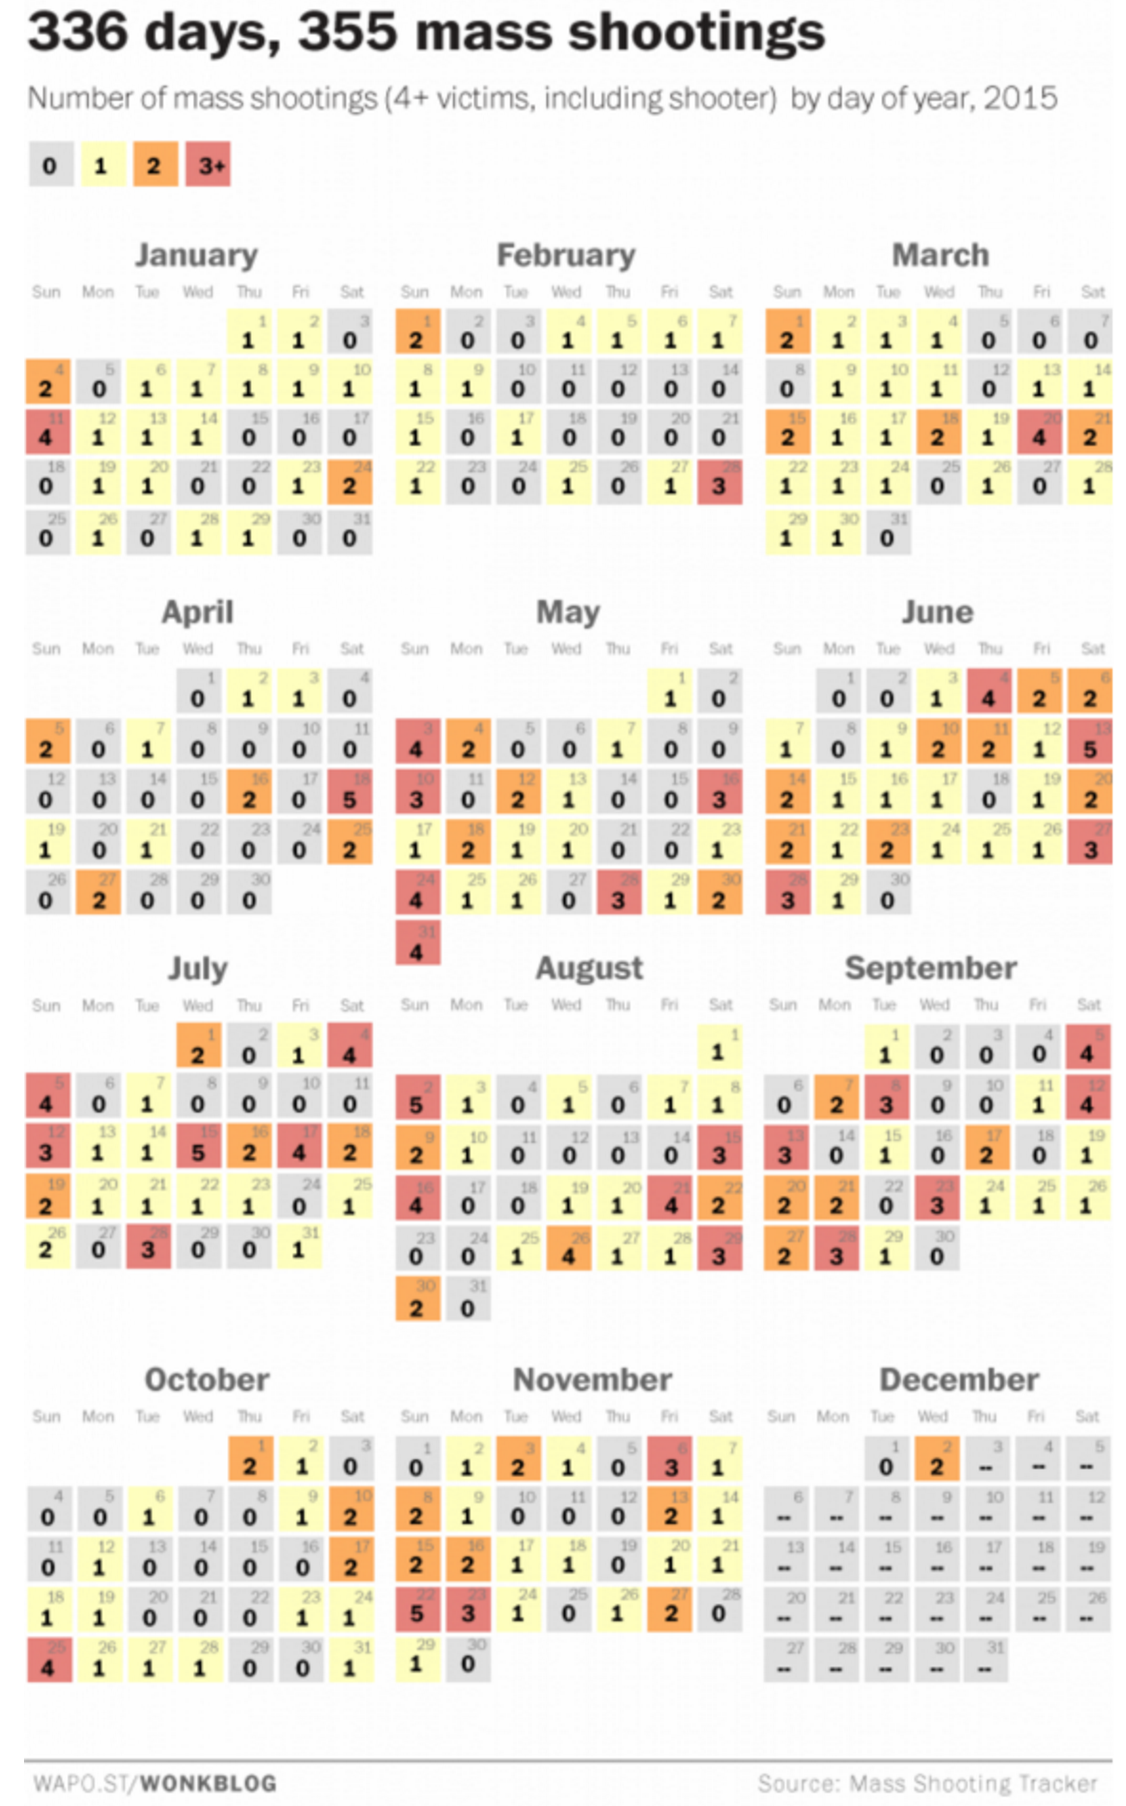 Washington Post shooting calendar